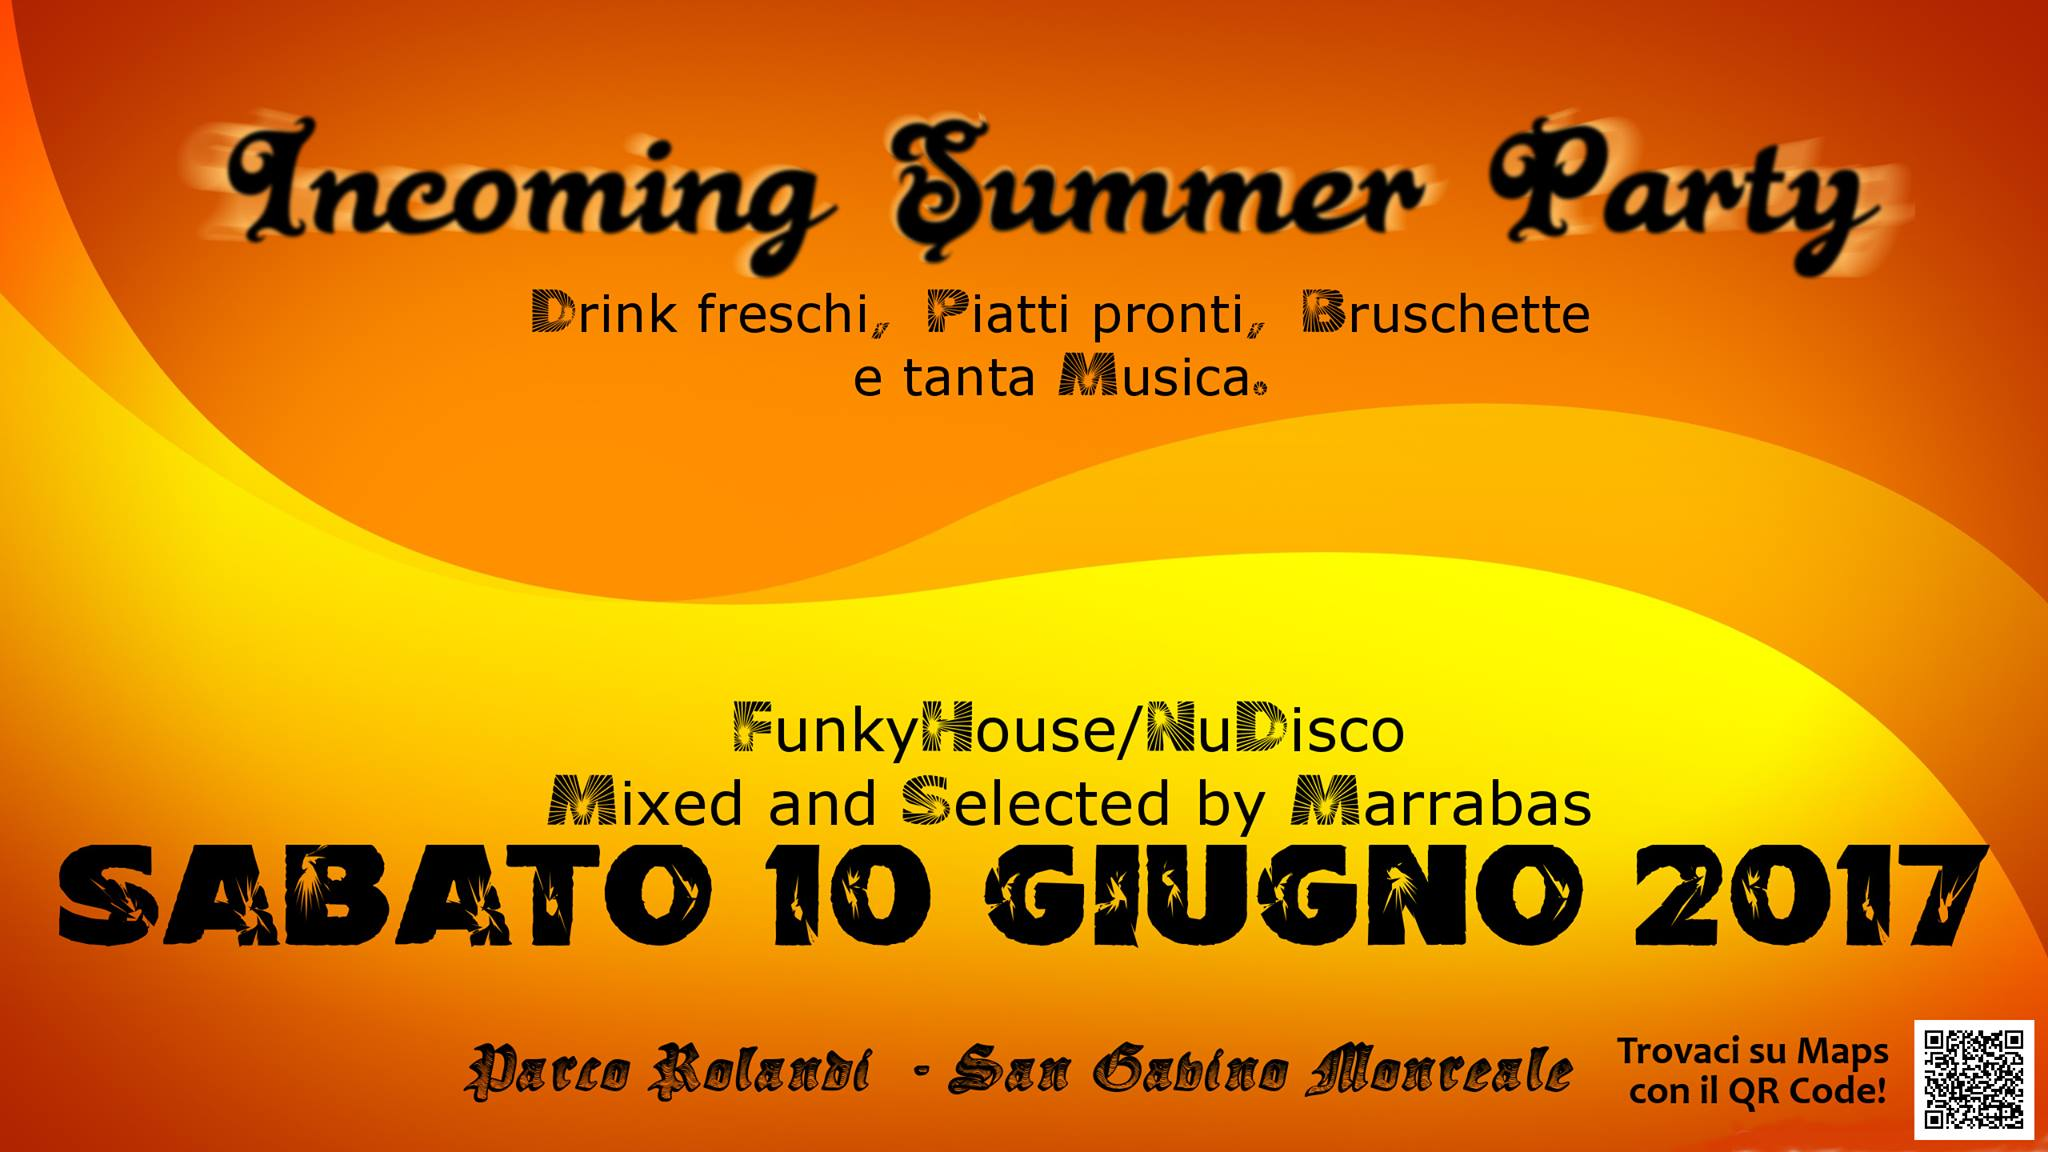 Incoming Summer Party